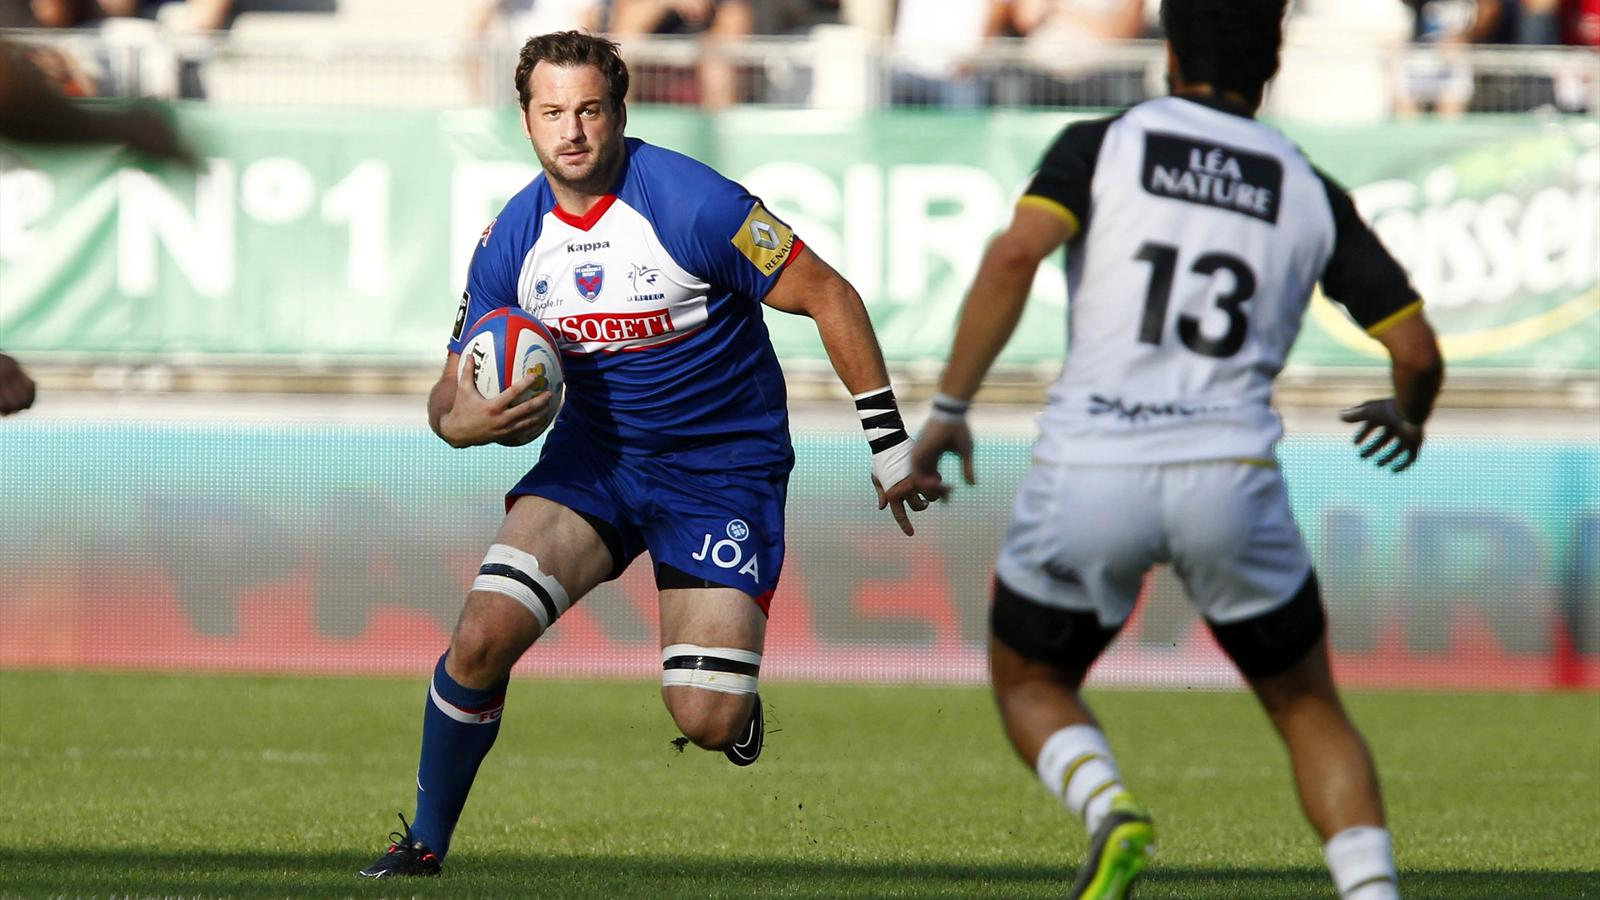 Rugby Top 14 FC Grenoble vs Racing Metro 92 en direct live streaming